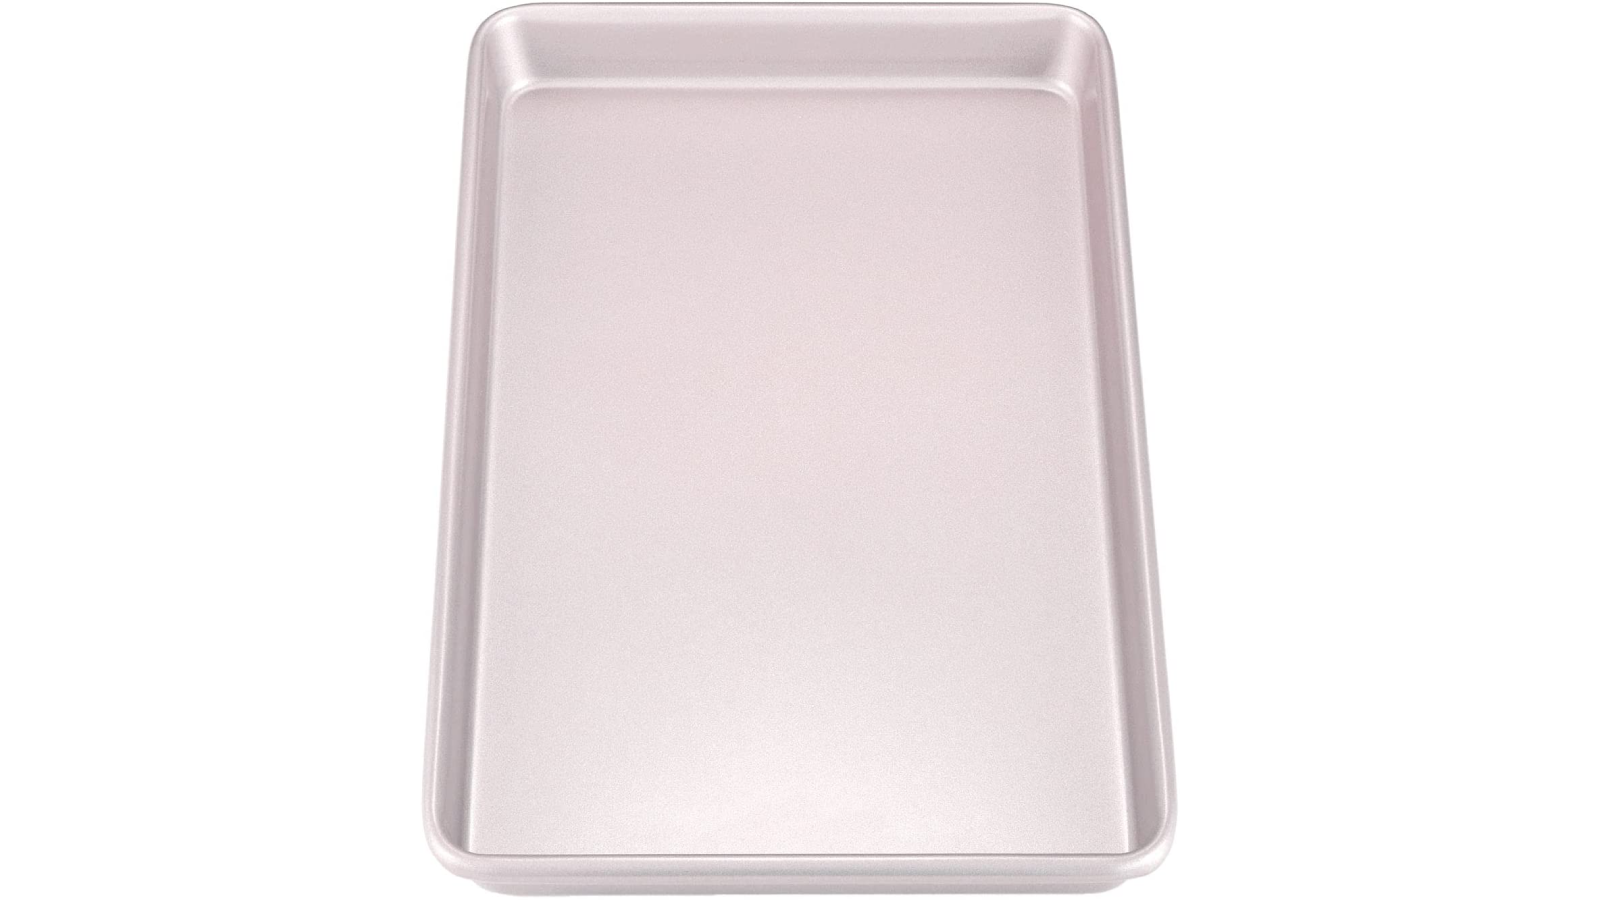 One carbon steel rimmed baking sheet in a champagne gold color.